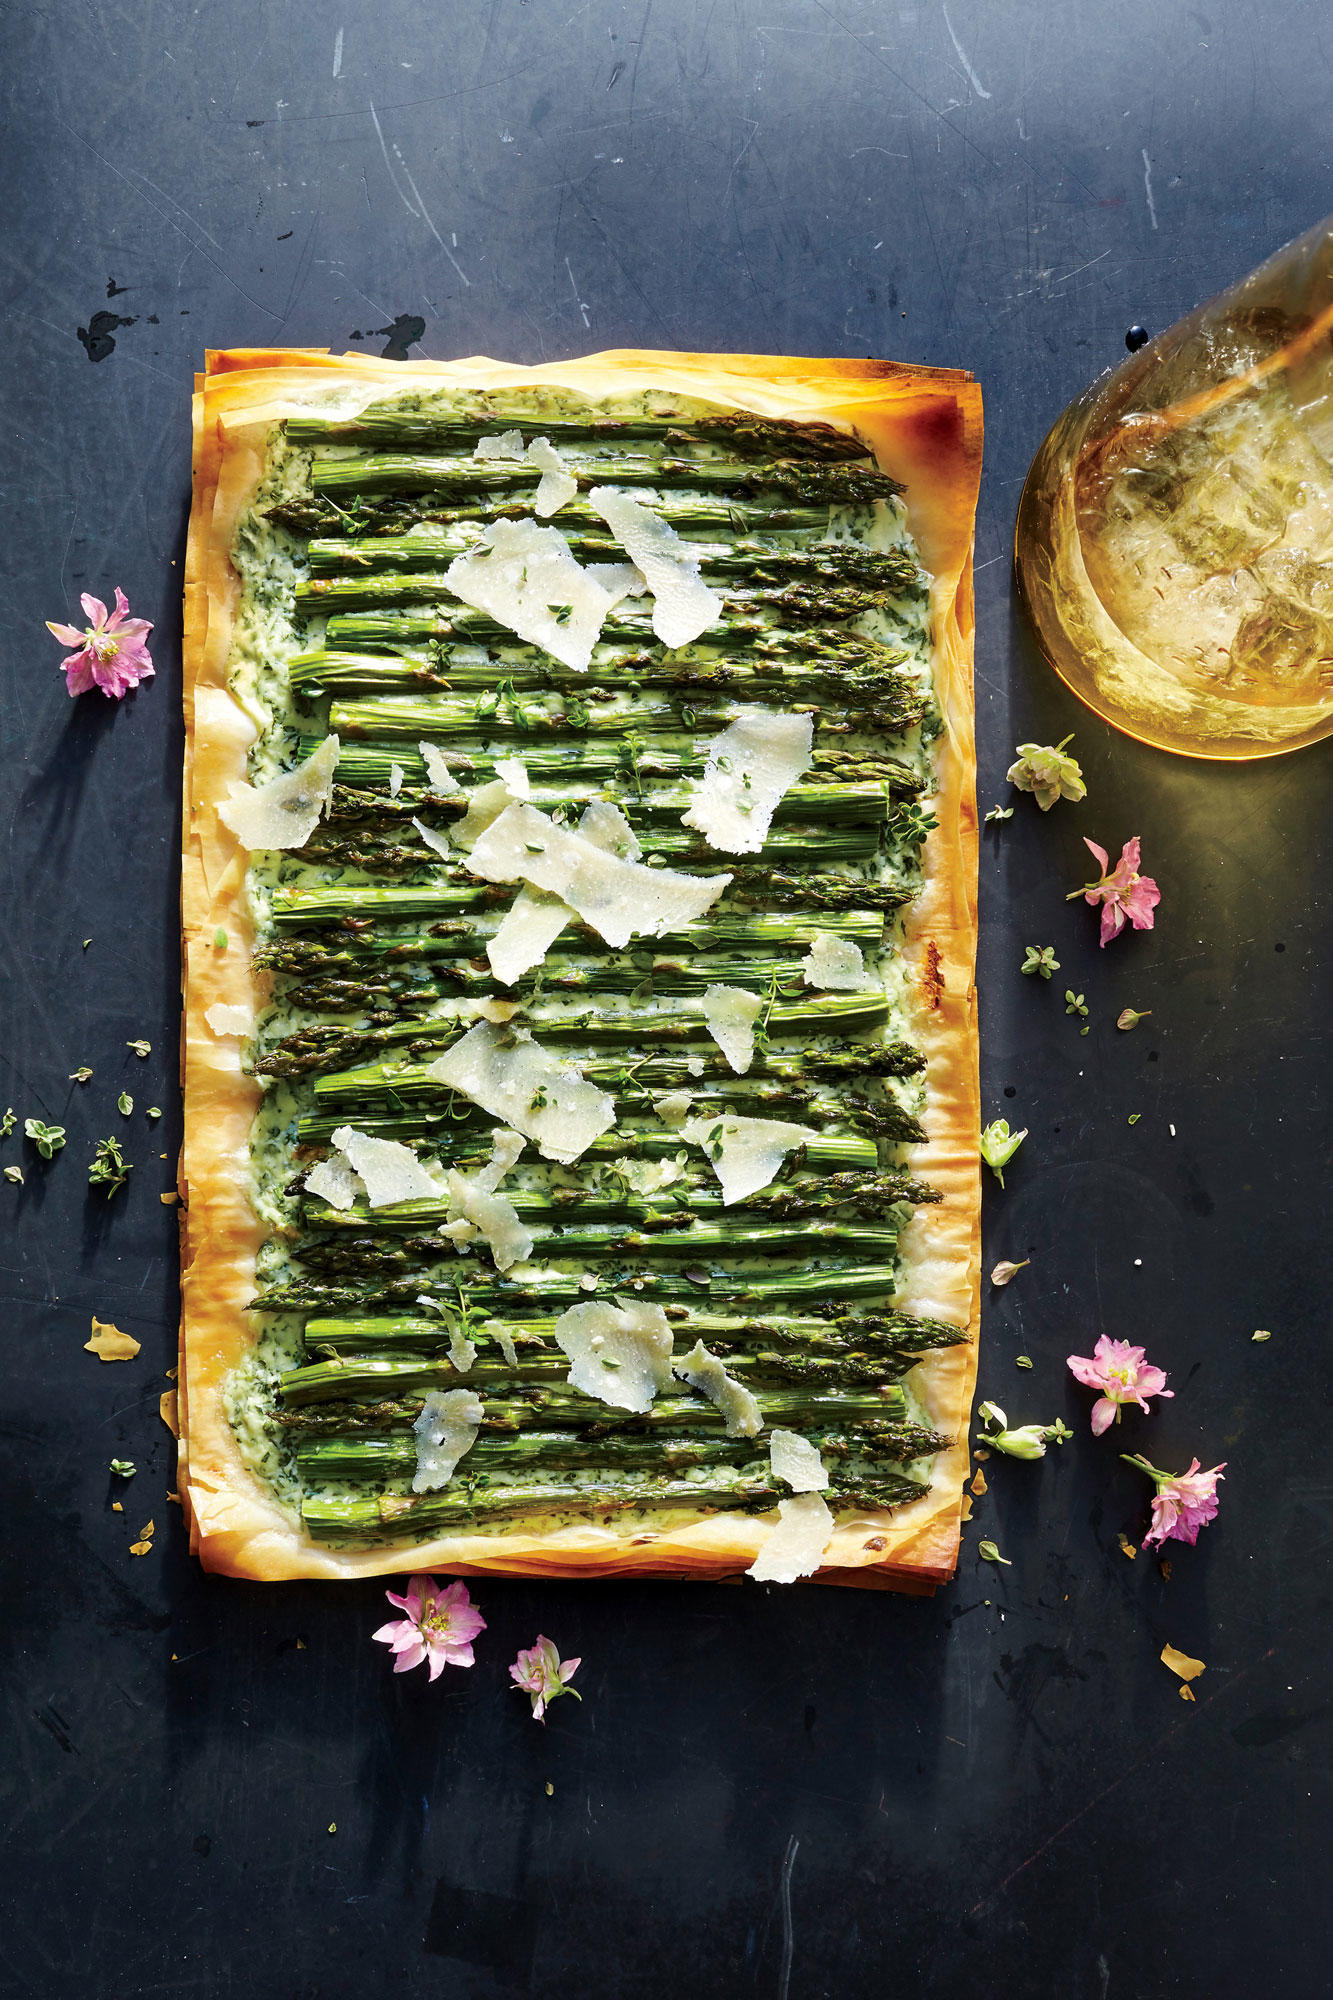 Herbed Ricotta, Asparagus, and Phyllo Tart